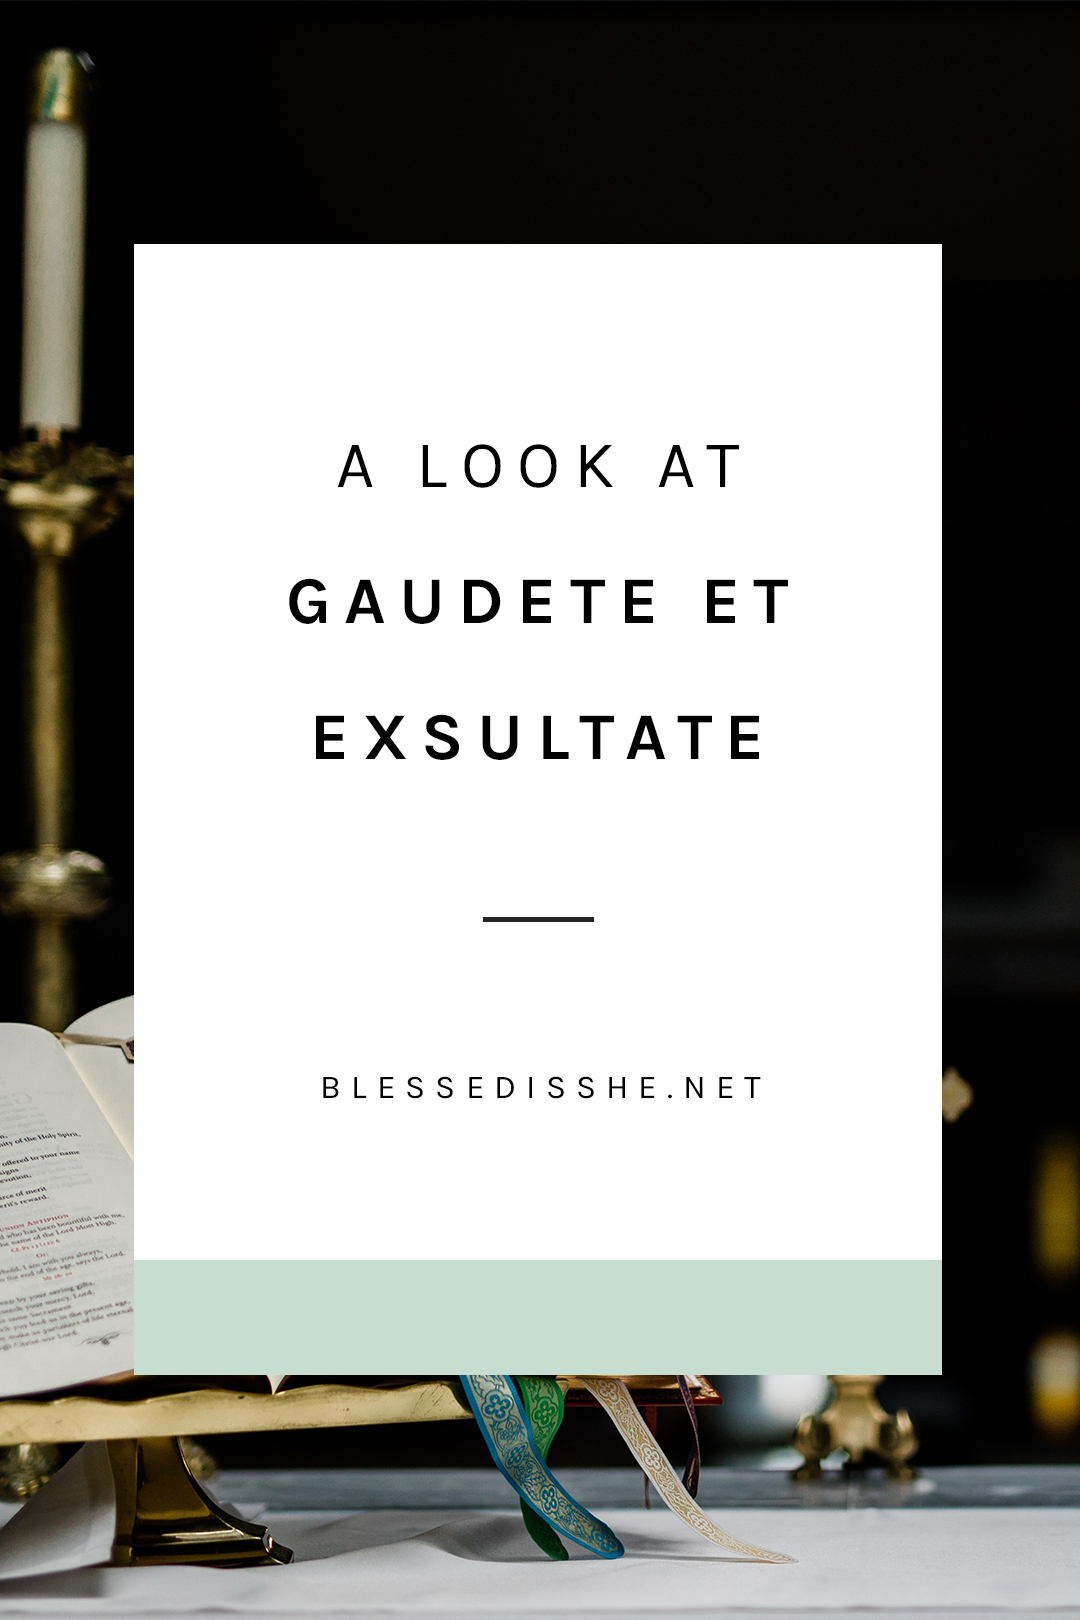 What does gaudete mean